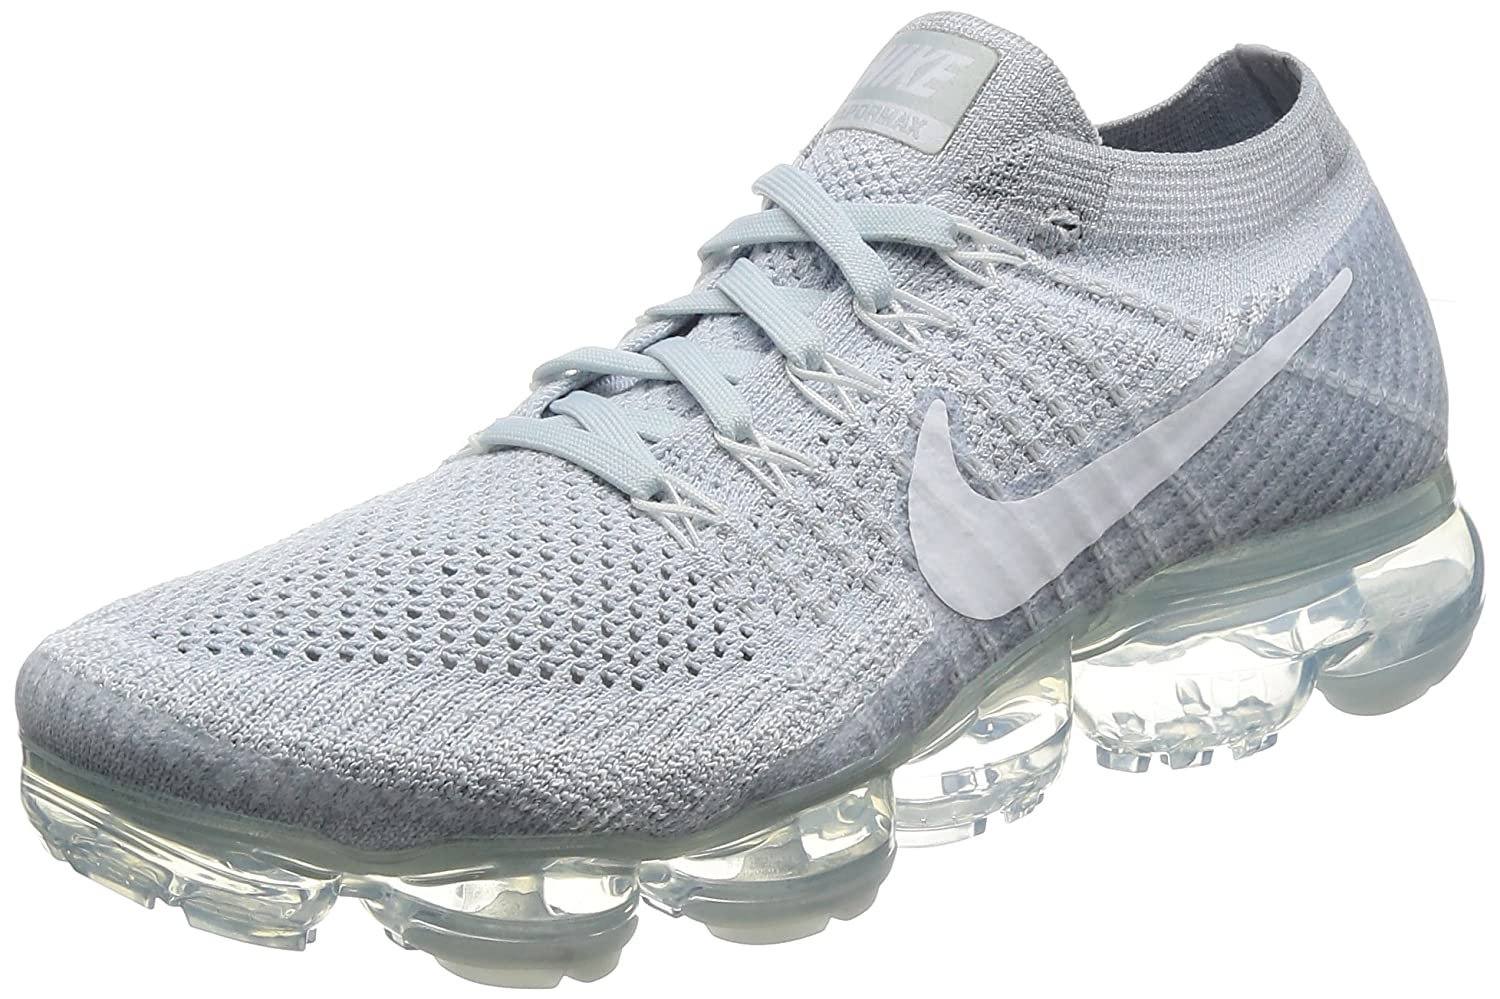 best cheap 9b8d8 9babe Amazon.com   Men s Nike Air Vapormax Flyknit Running Shoe   Fashion Sneakers